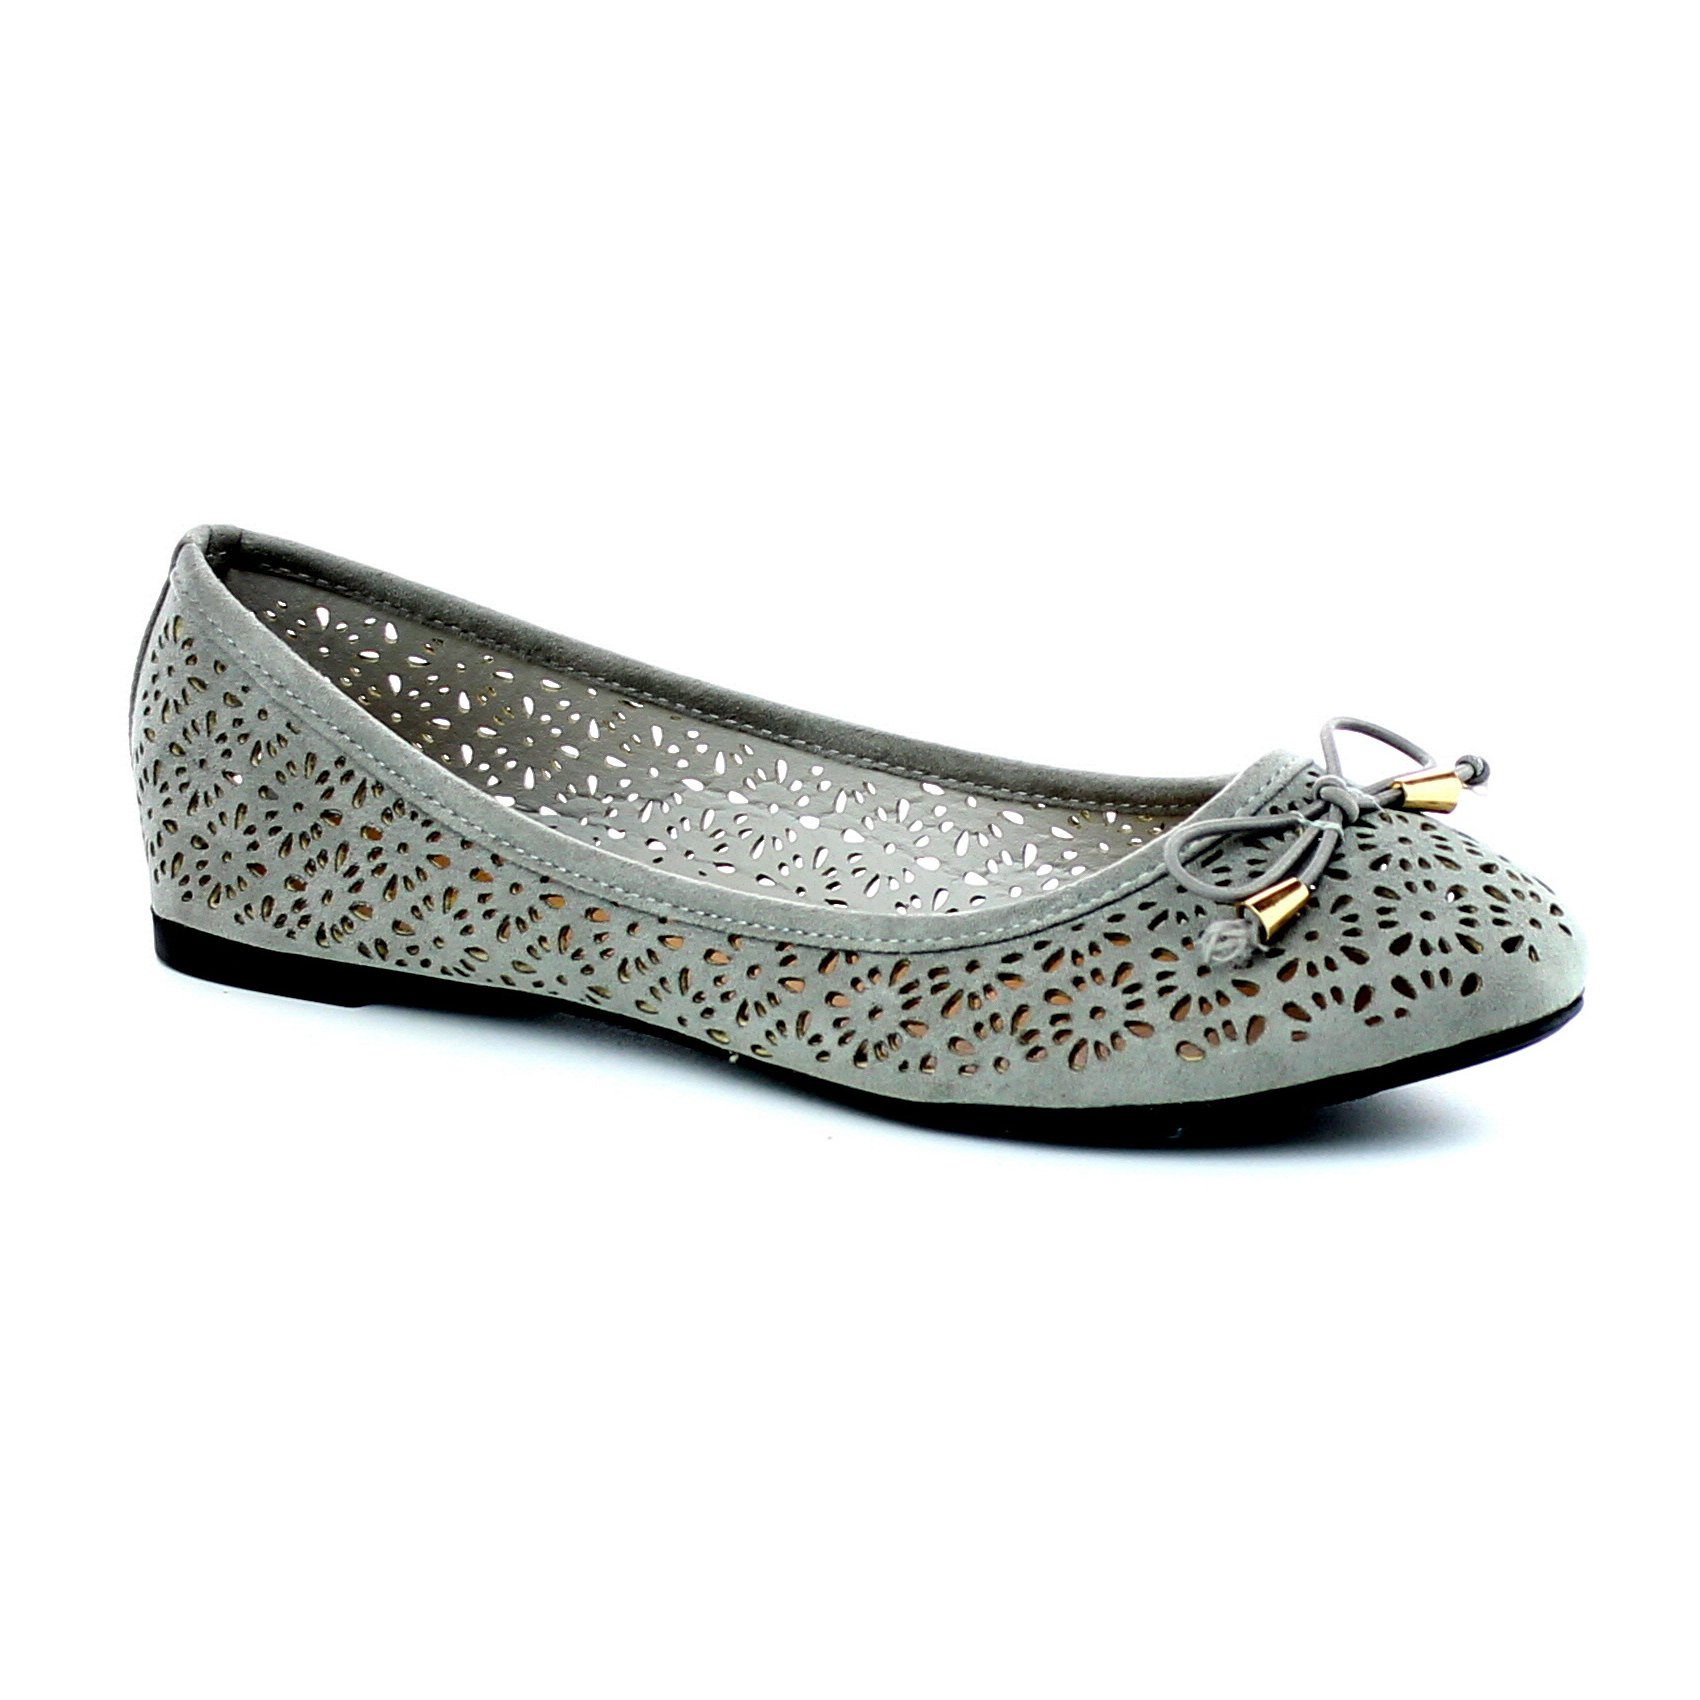 Women's Slip On Ballet Flats Perforated Cut Out Bow Tie Shoes Ballerina Comfort Slippers FC05 Grey 7.5